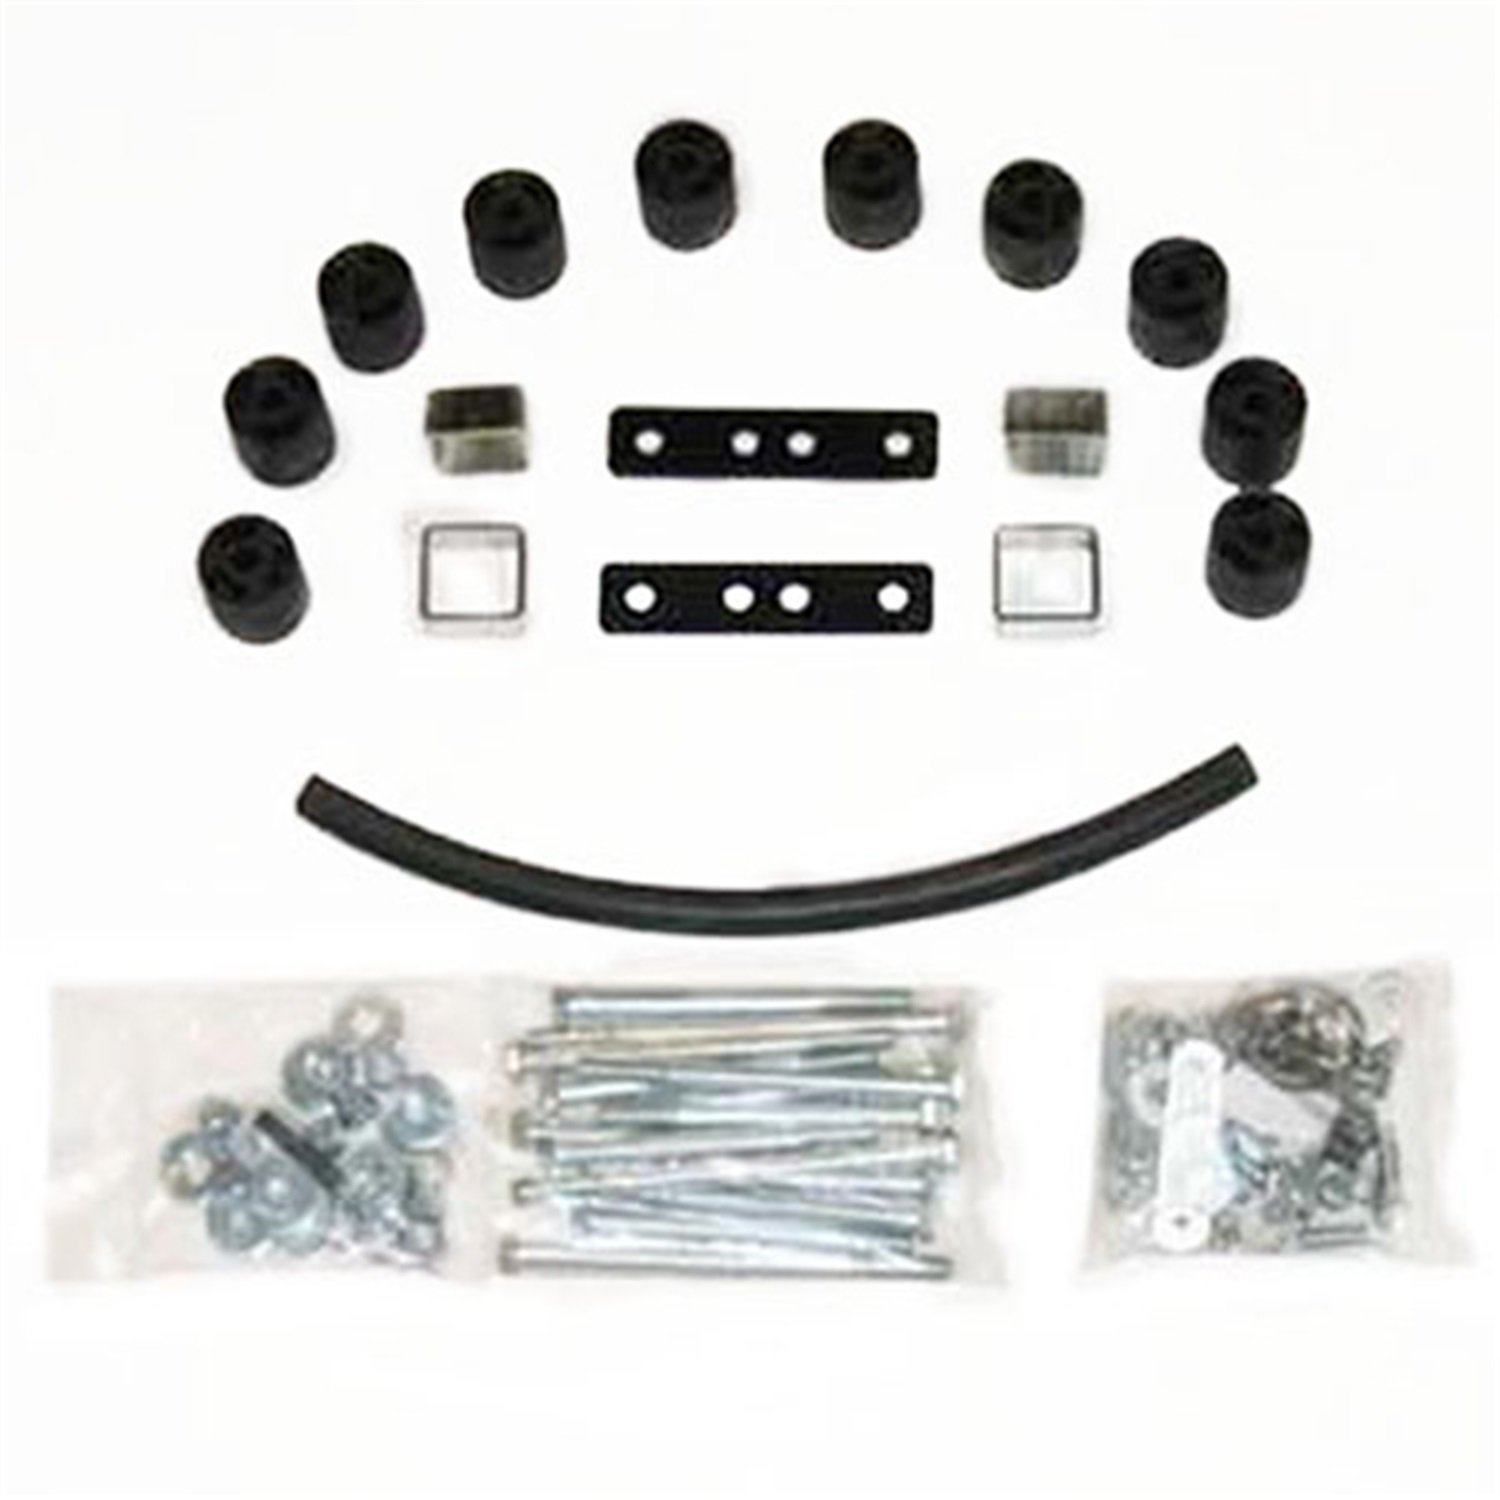 Performance Accessories, Toyota 4 Runner 2WD and 4WD (#PA9628 Required For Auto Trans) 2'' Body Lift Kit, fits 1986 to 1989, PA5082, Made in America